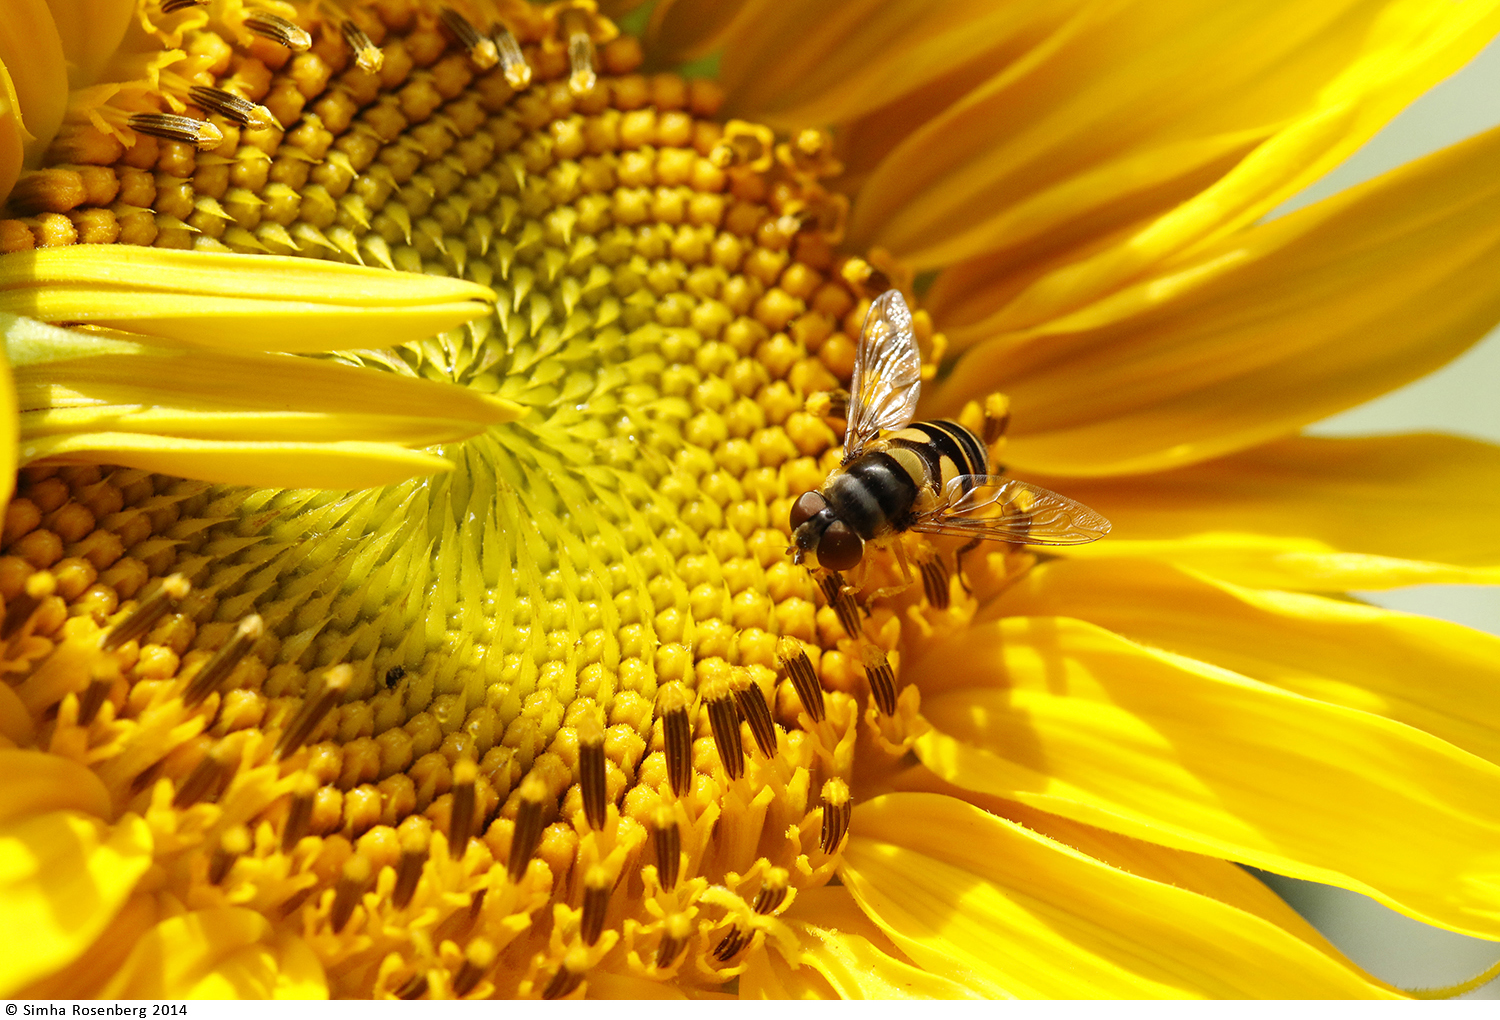 Bee intently pollinating a deep yellow sunflower illustrates the role of nonprofit communications in helping a organizations thrive.